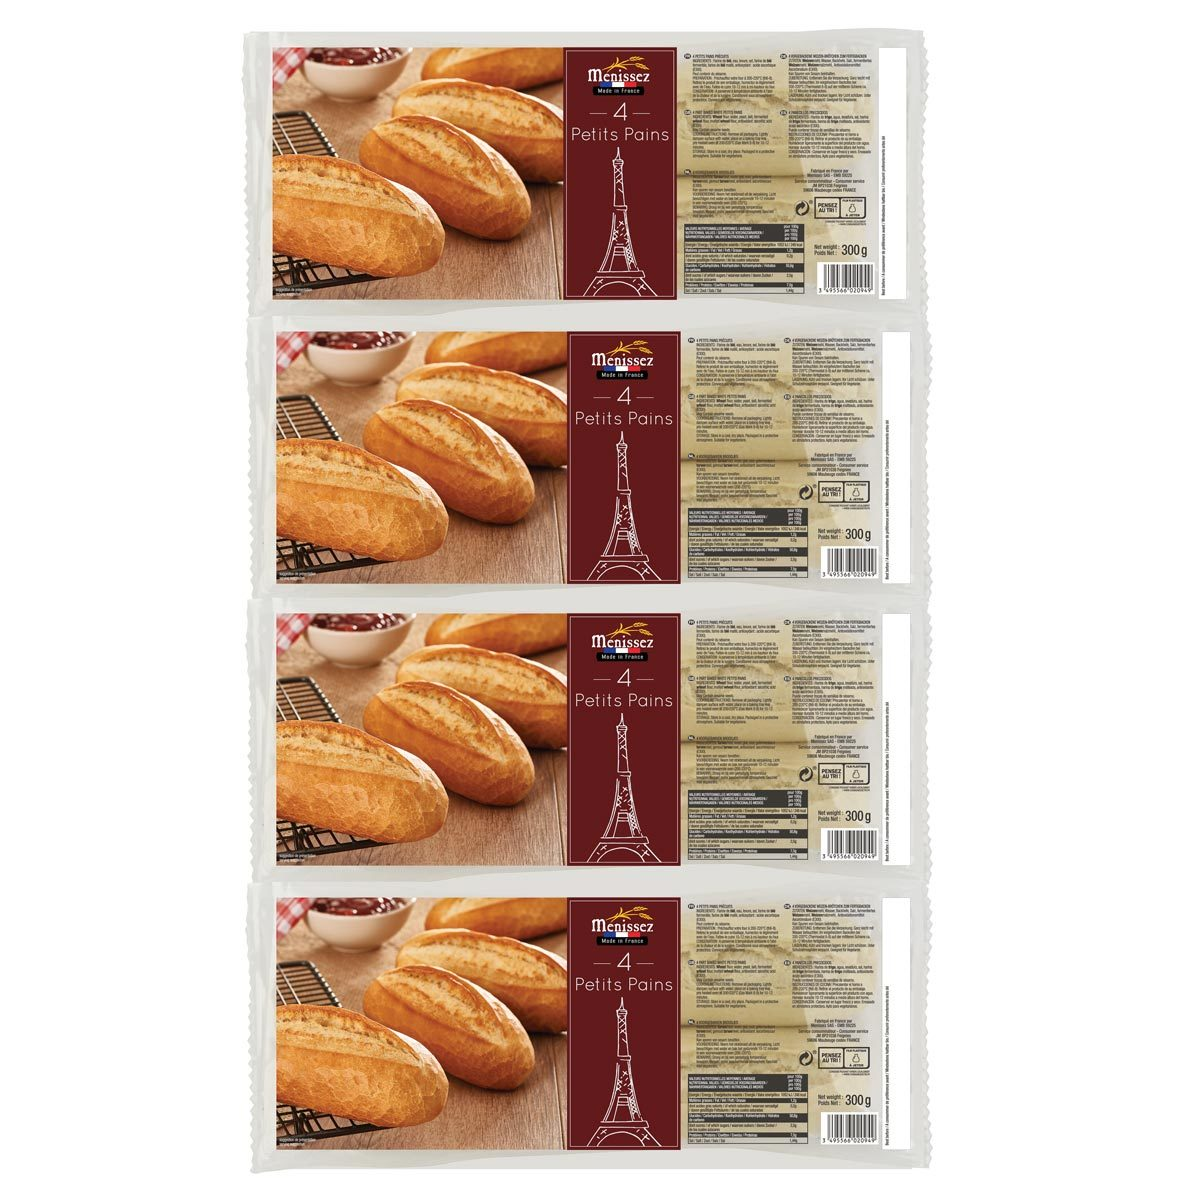 Menissez Petits Pains 4 X 4 Pack 4 X 300g Costco Uk